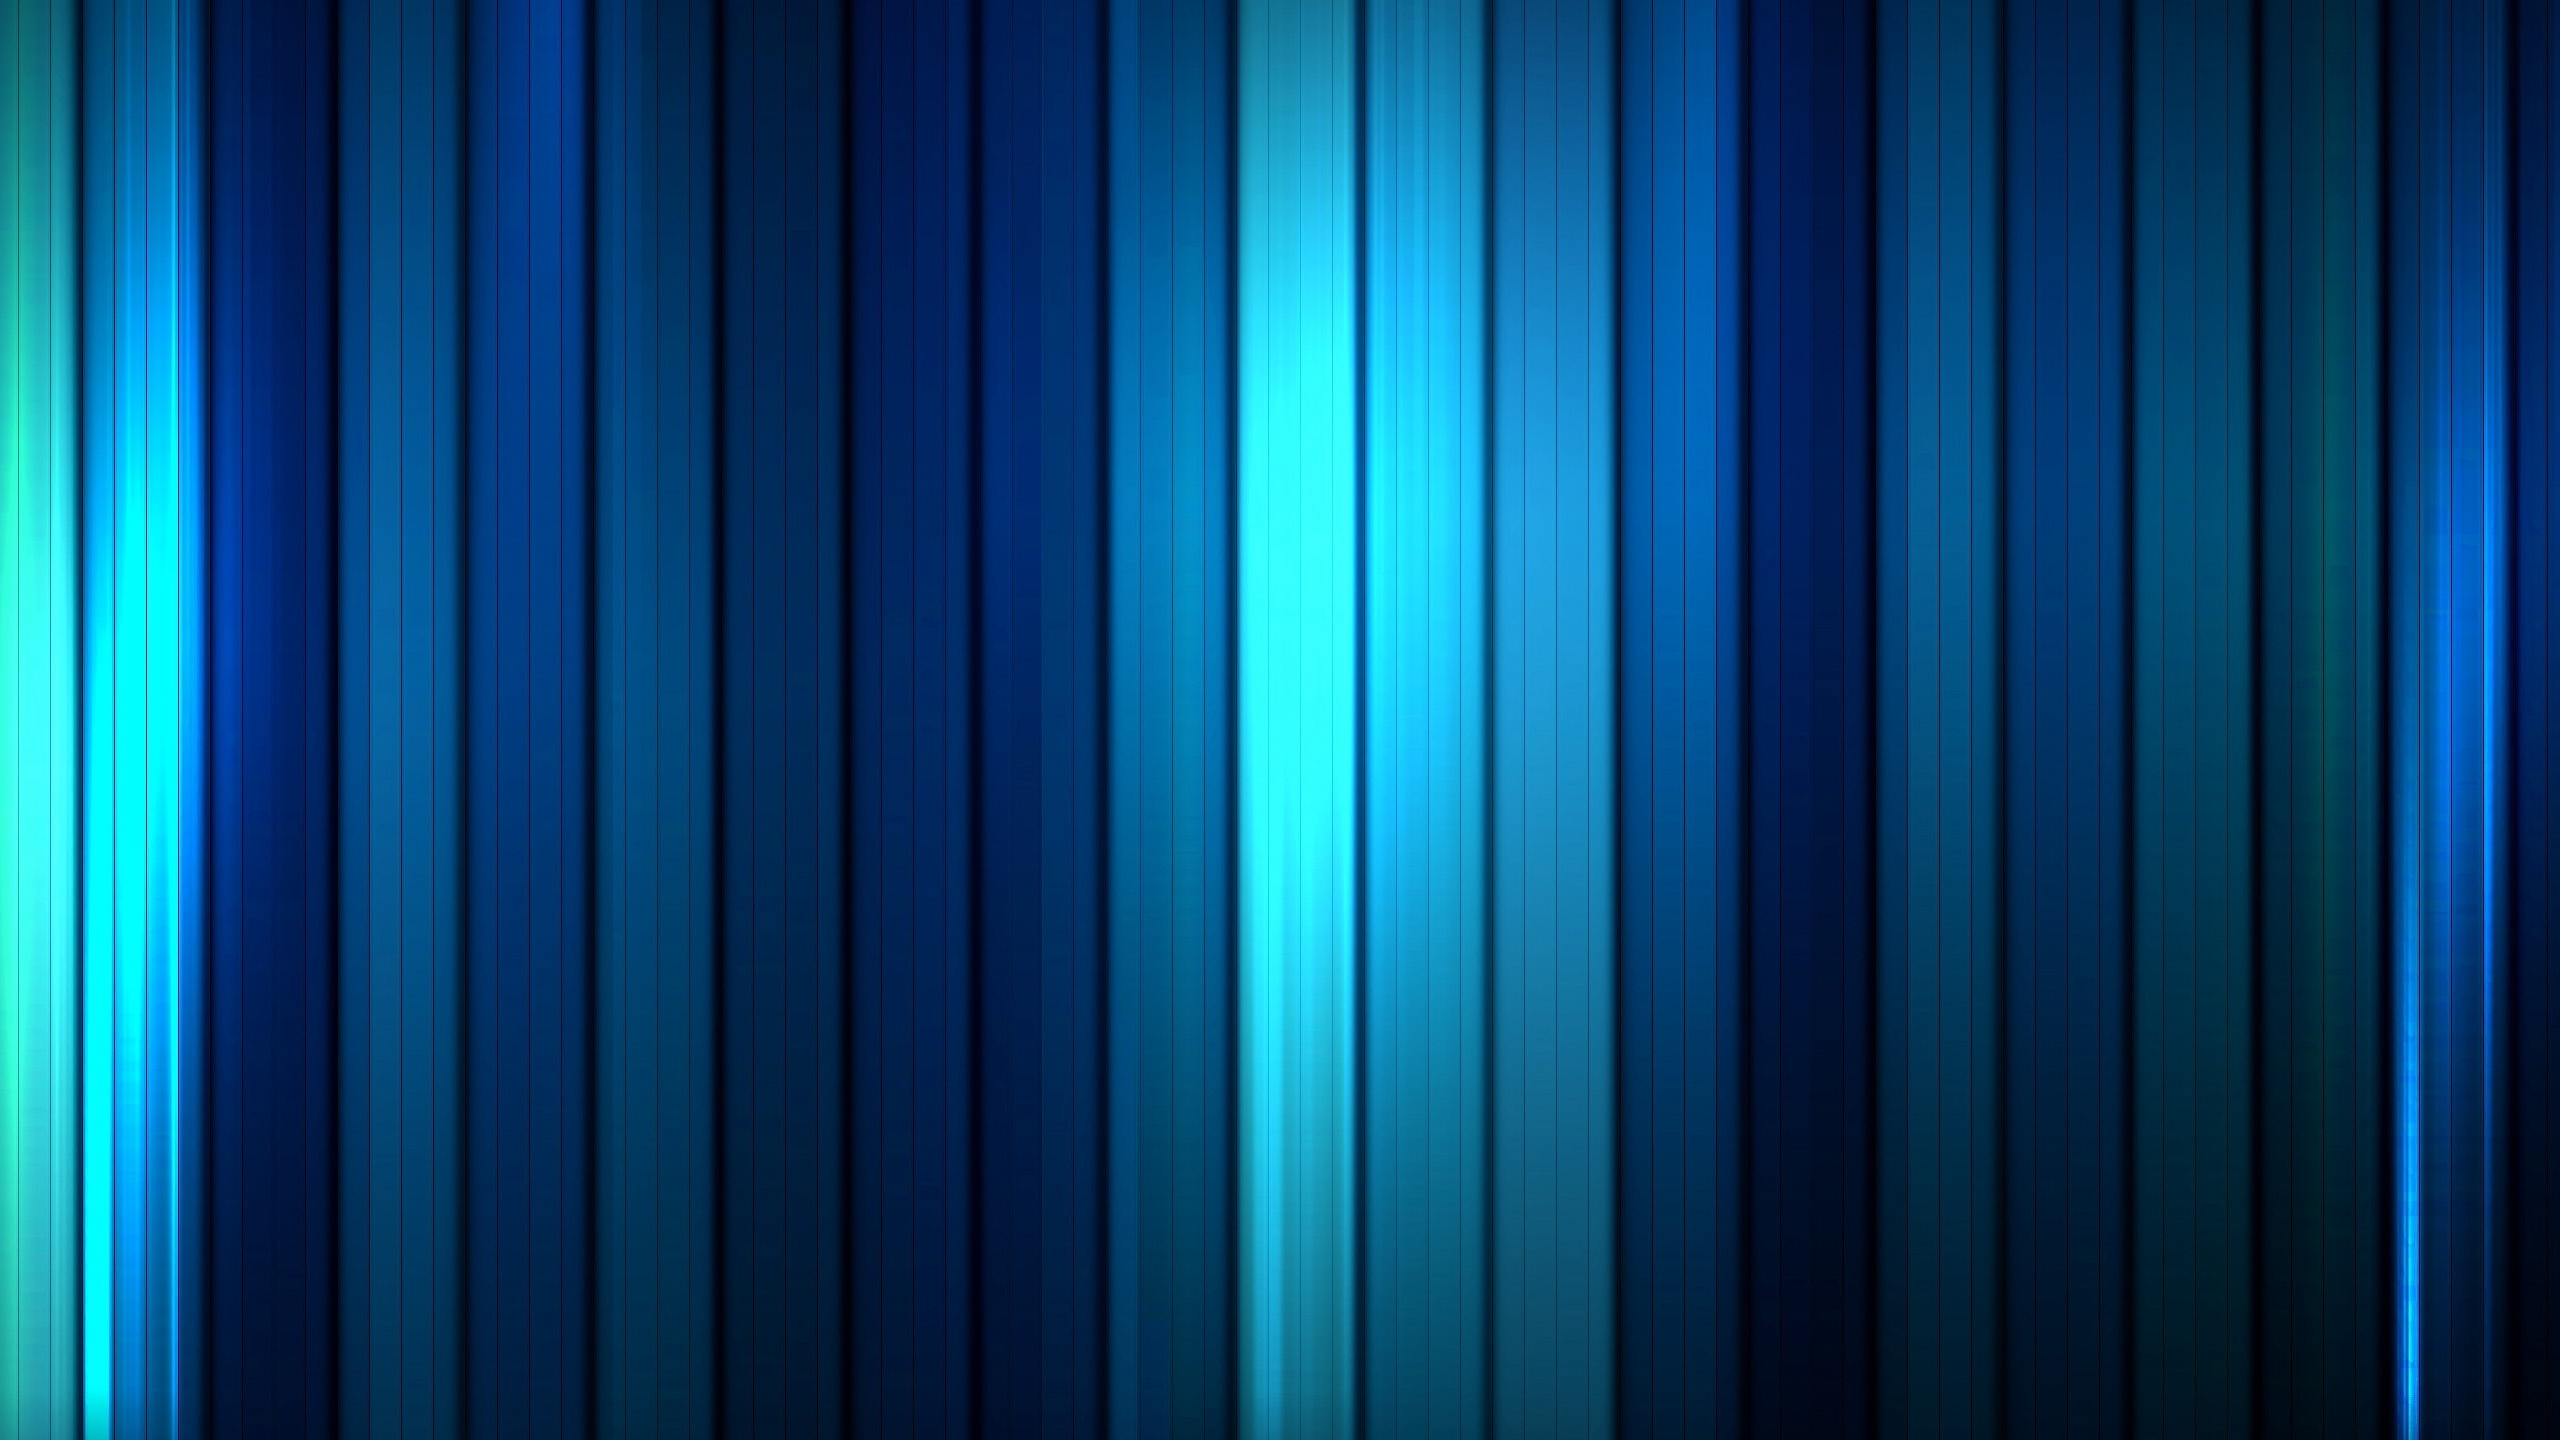 2560x1440 Vertical blue stripes desktop PC and Mac wallpaper 2560x1440